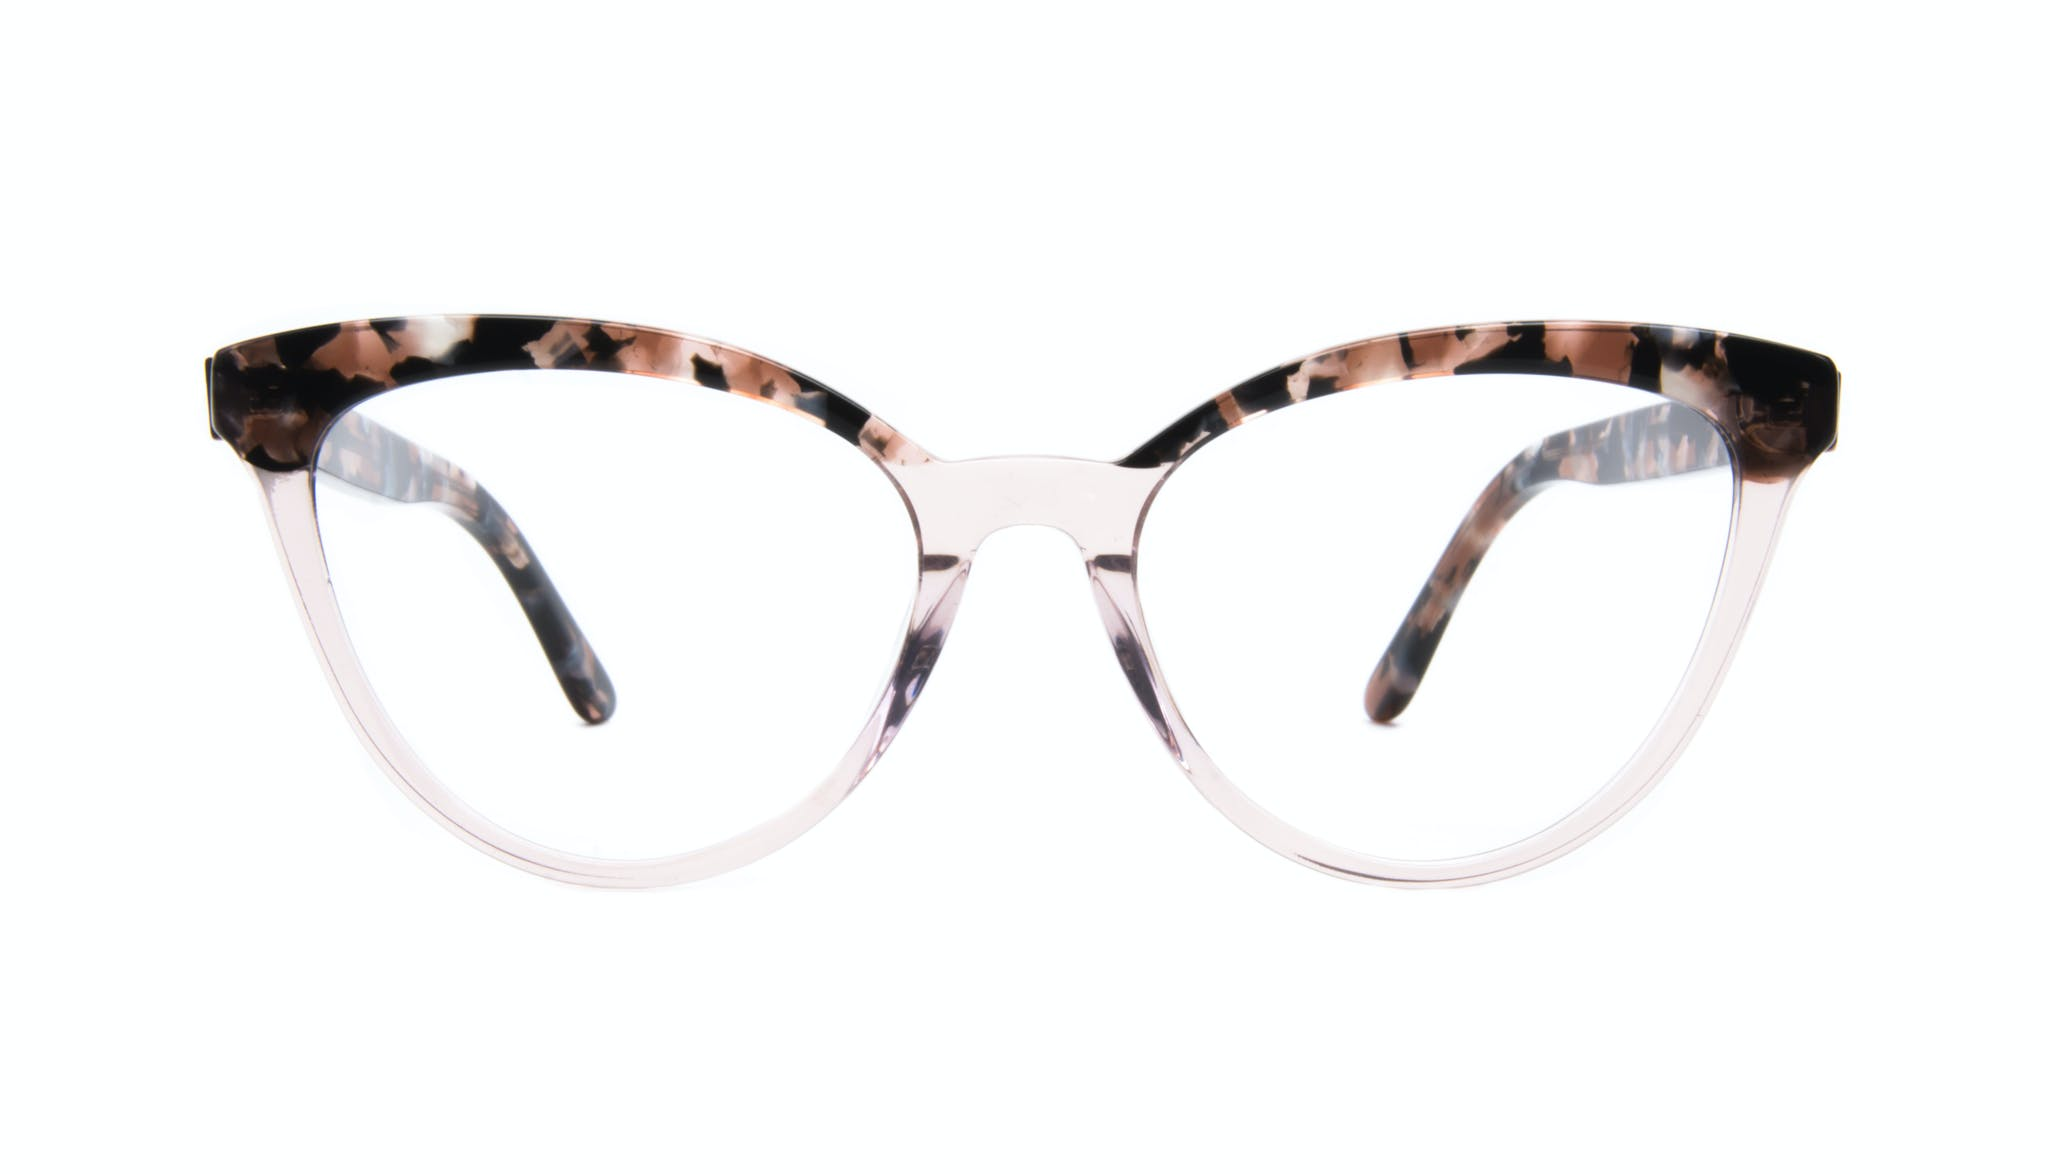 Affordable Fashion Glasses Cat Eye Daring Cateye Eyeglasses Women Reverie Rose Tort Front